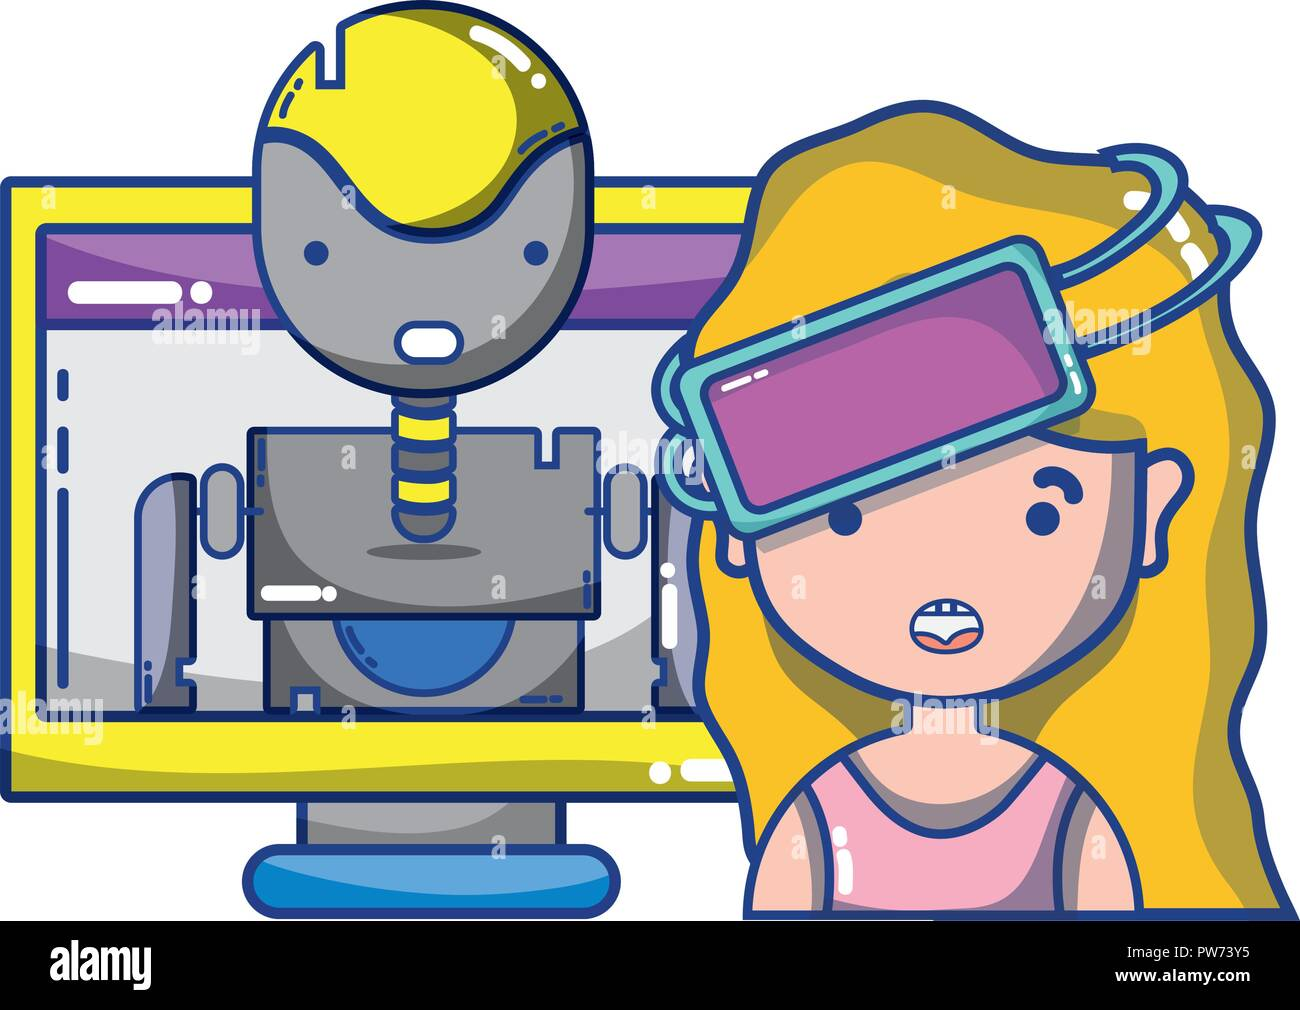 FPV goggles technology cartoons - Stock Image